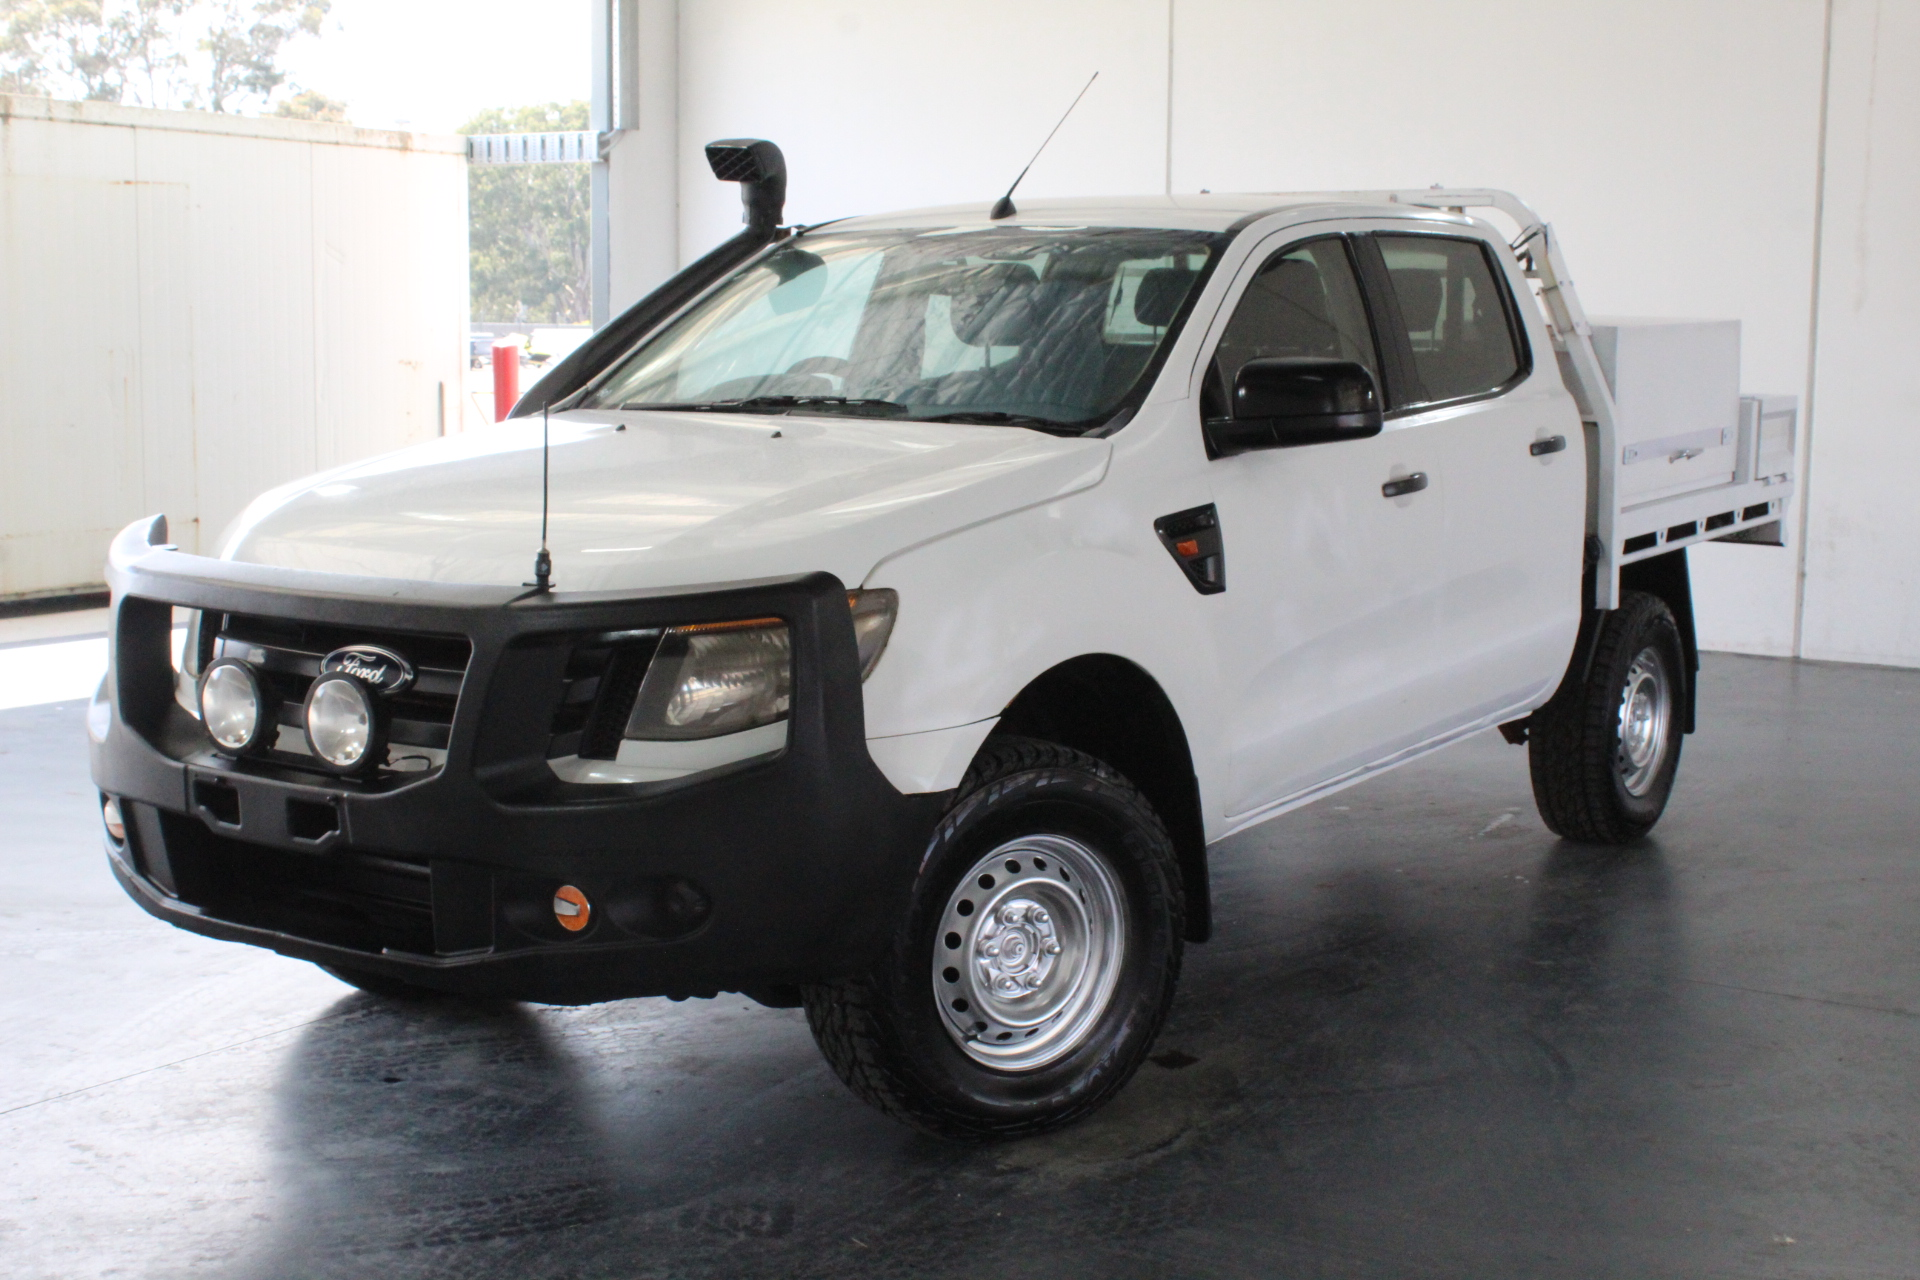 2012 Ford Ranger XL 4X4 PX Turbo Diesel Automatic Crew Cab Chassis